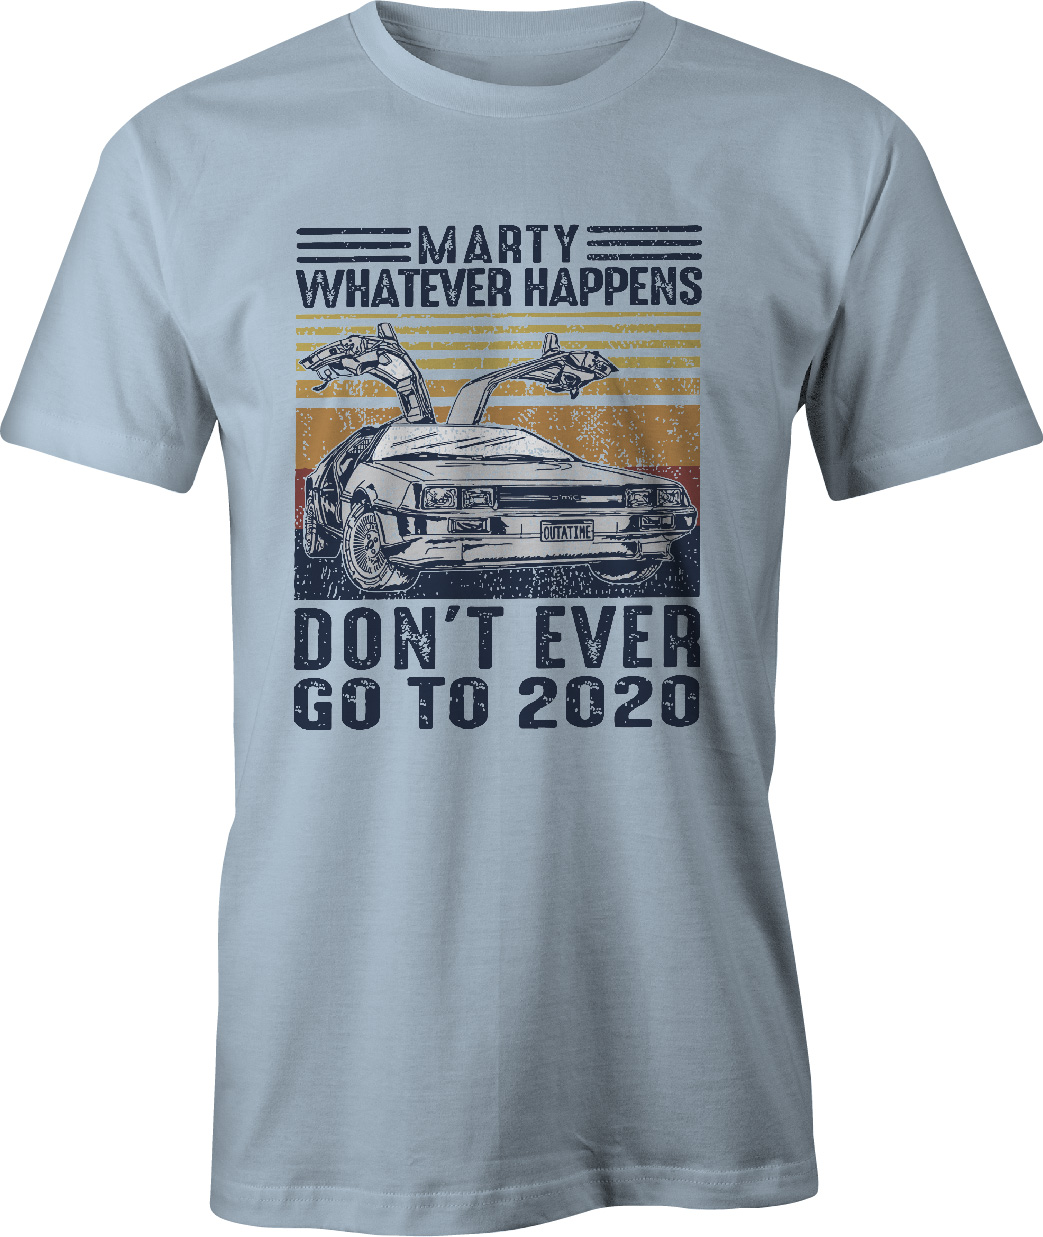 Back To The Future Don't Ever Go Back to 2021 T Shirt in light blue